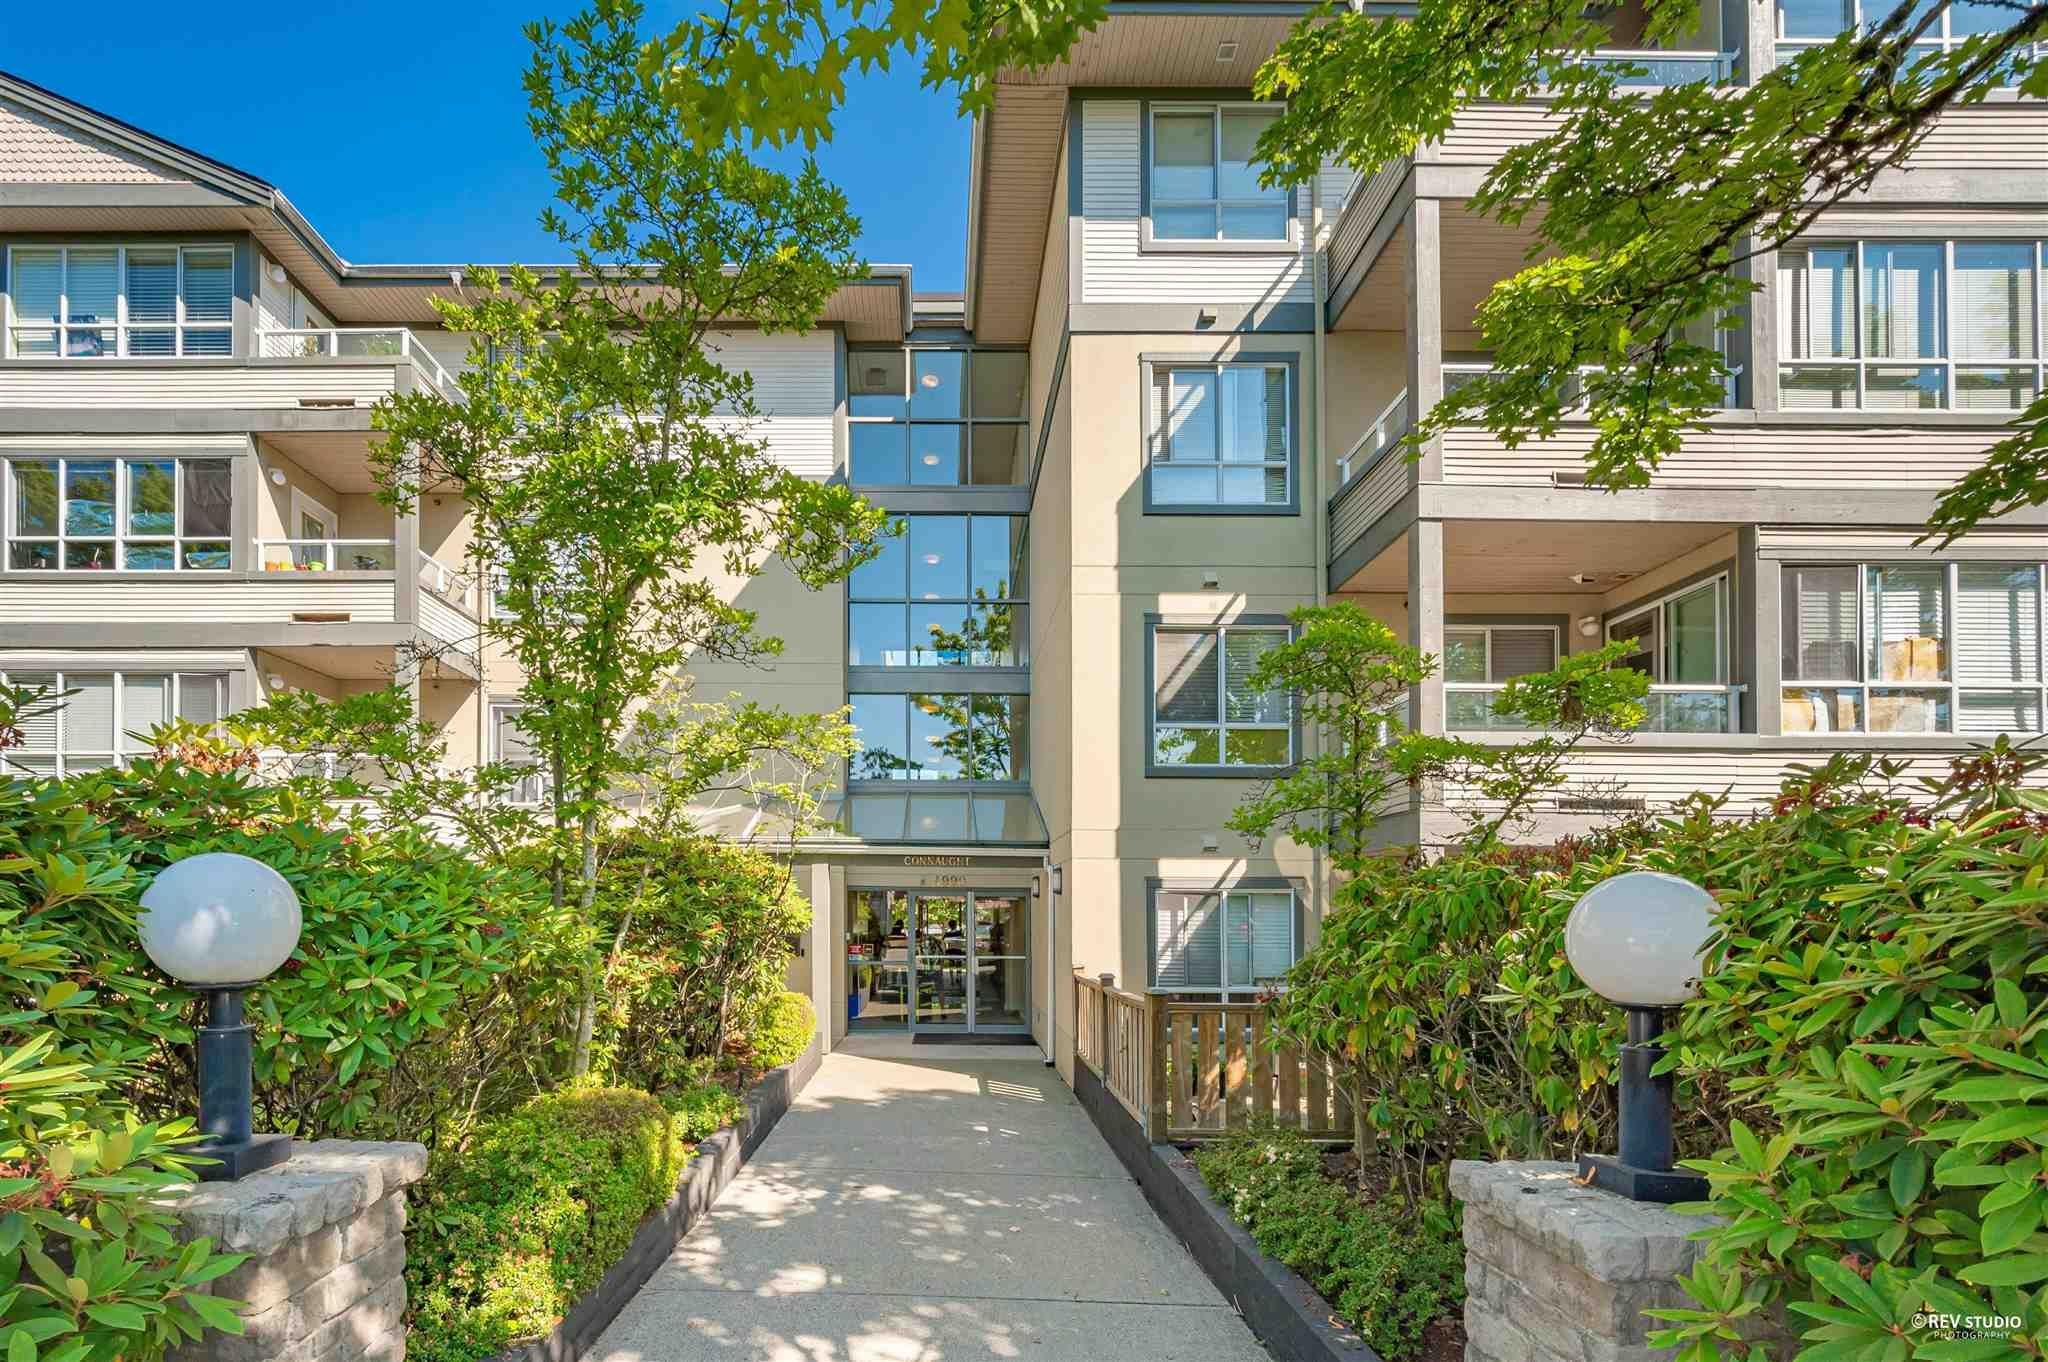 """Main Photo: 206 4990 MCGEER Street in Vancouver: Collingwood VE Condo for sale in """"Connaught"""" (Vancouver East)  : MLS®# R2600834"""